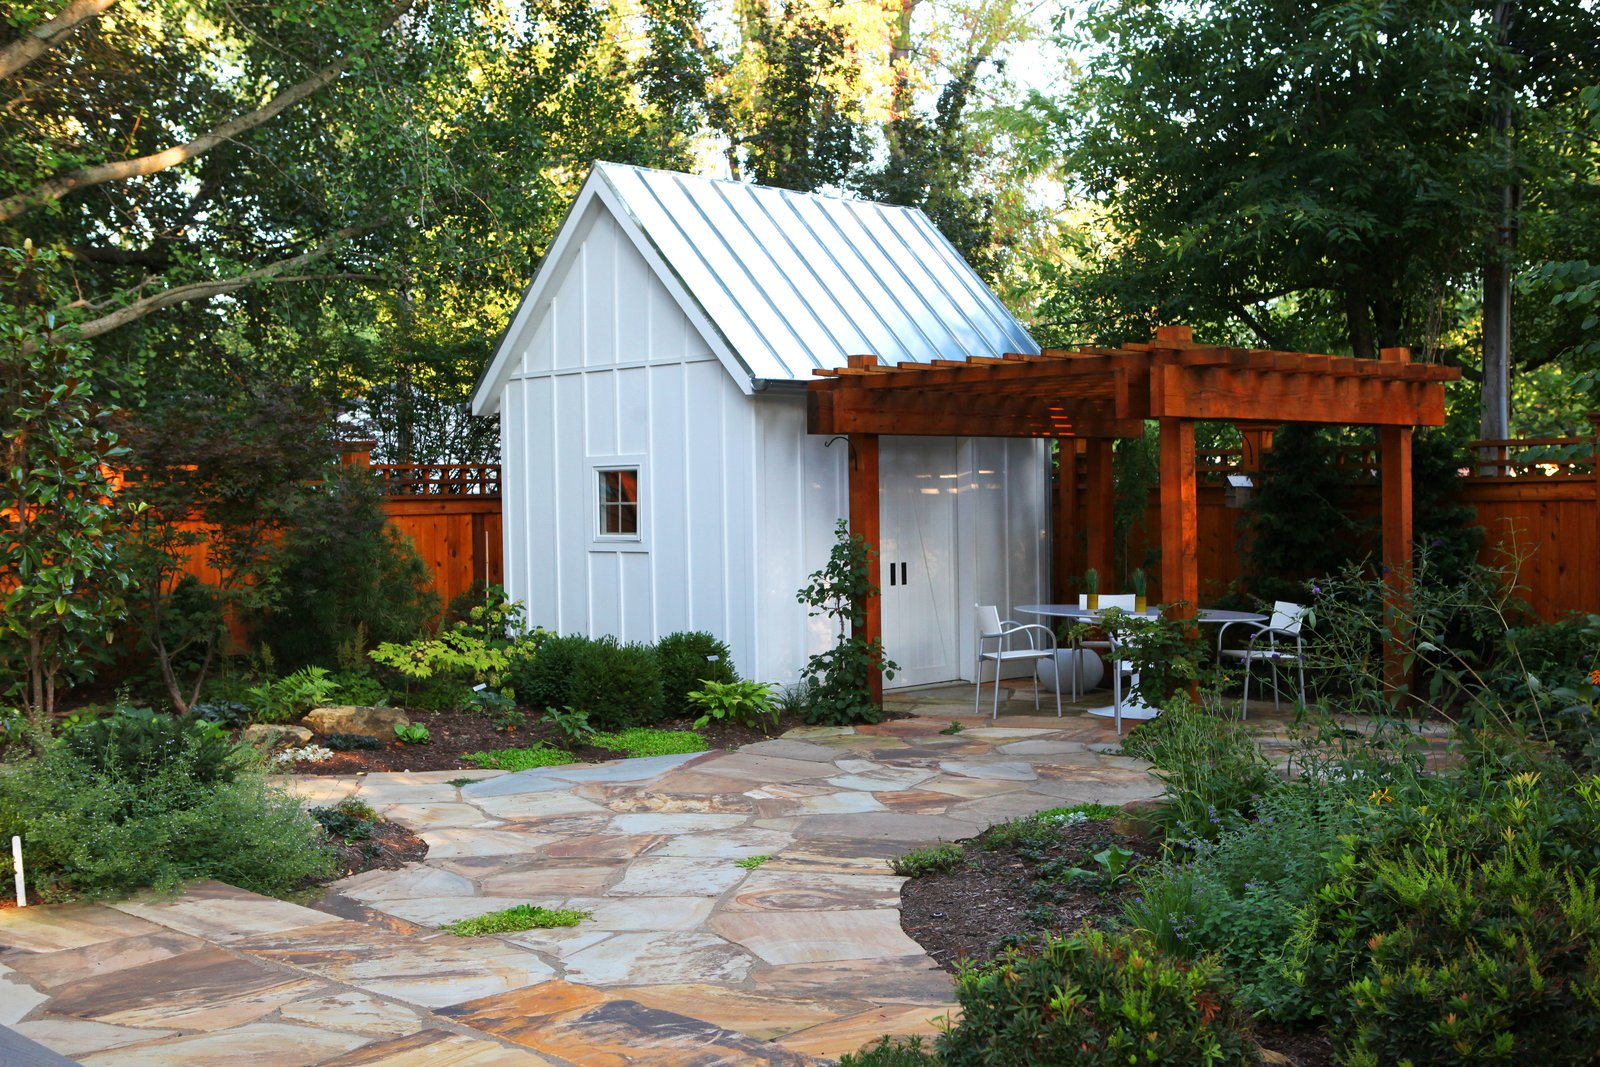 The Owner, a master gardener, desired a direct visual connection to the backyard, gardens, garden shed and pergola as an integral component of the design.  Urban Farmhouse by ONE 10 STUDIO Architects